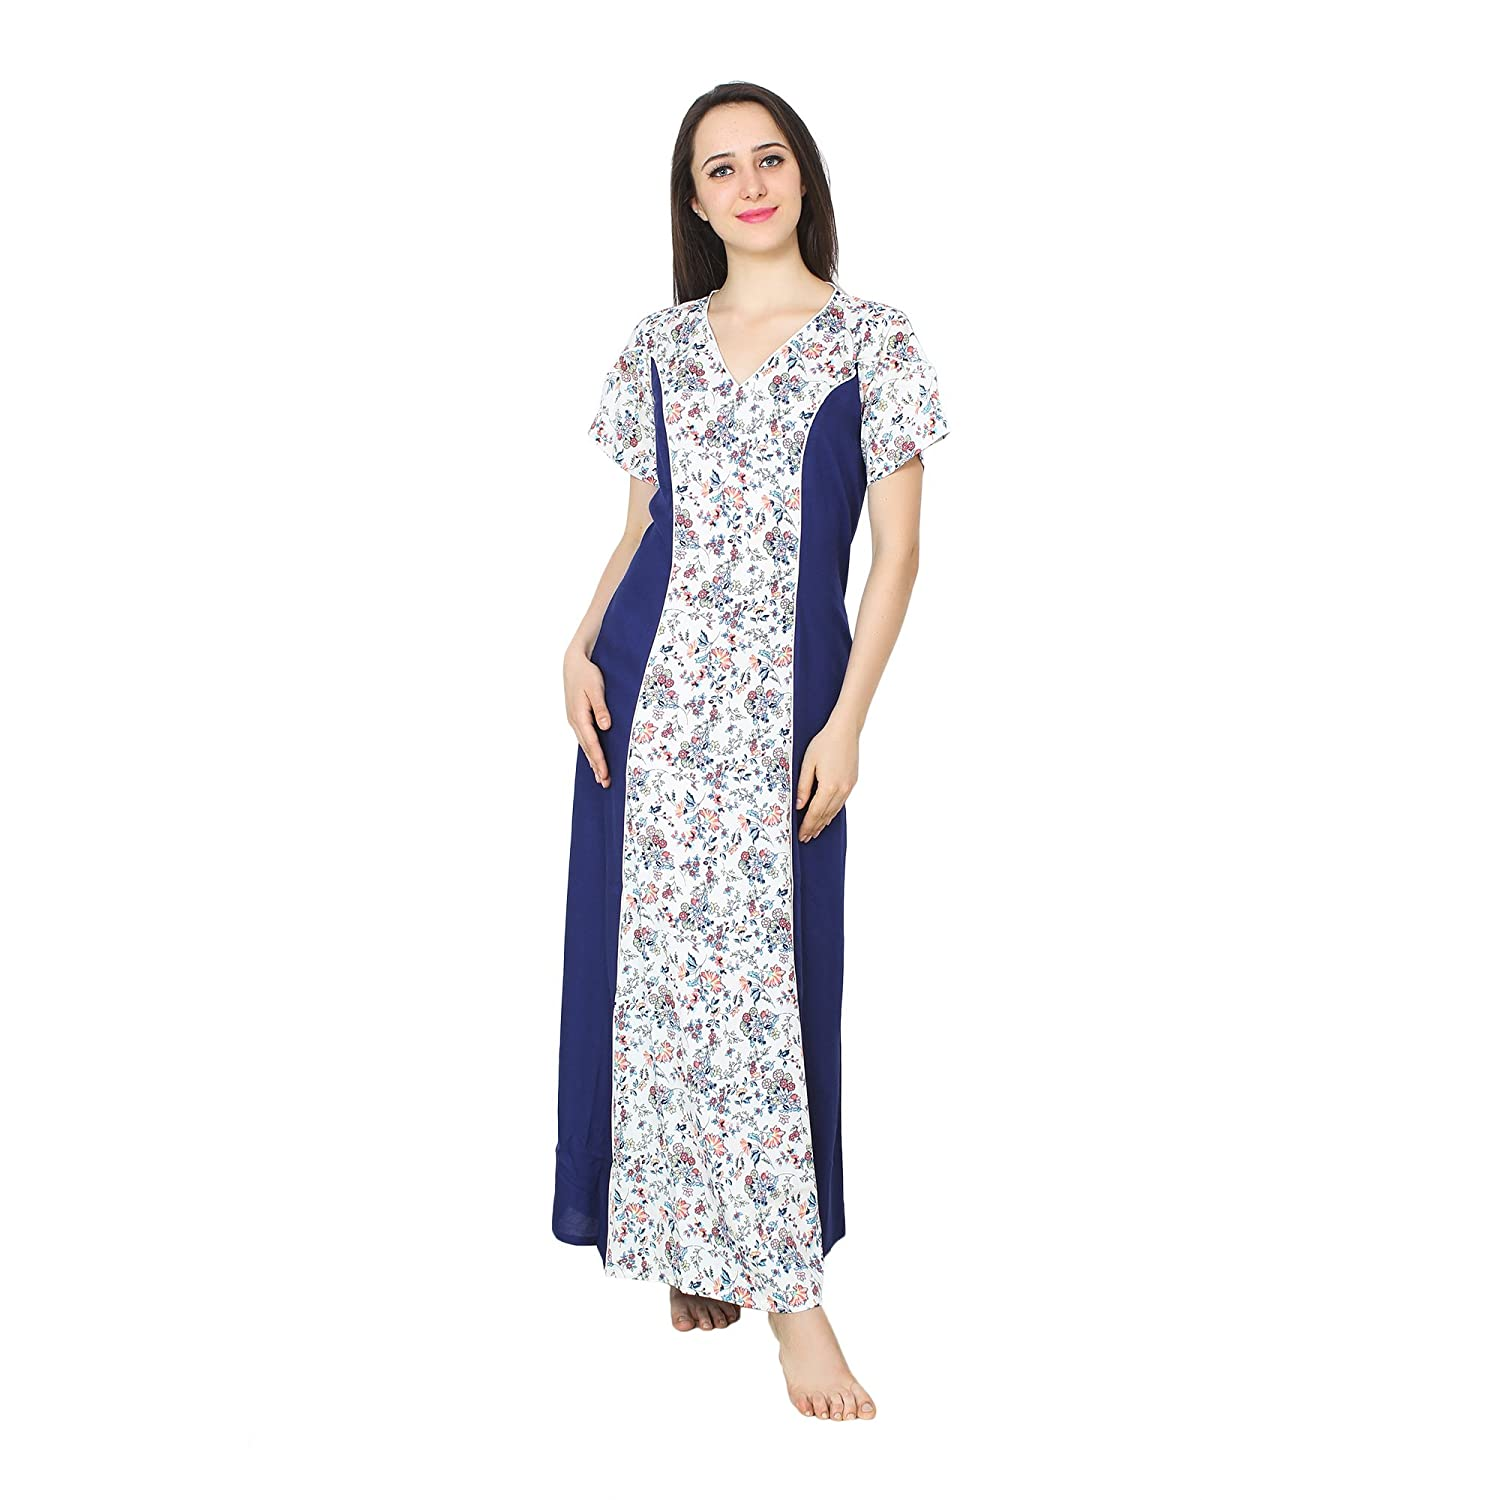 Patrorna Cotton Silk Blend Women s Princess Line Nighty Night Gown in Navy  Blue Print (Size S-7XL 53ad7a59a